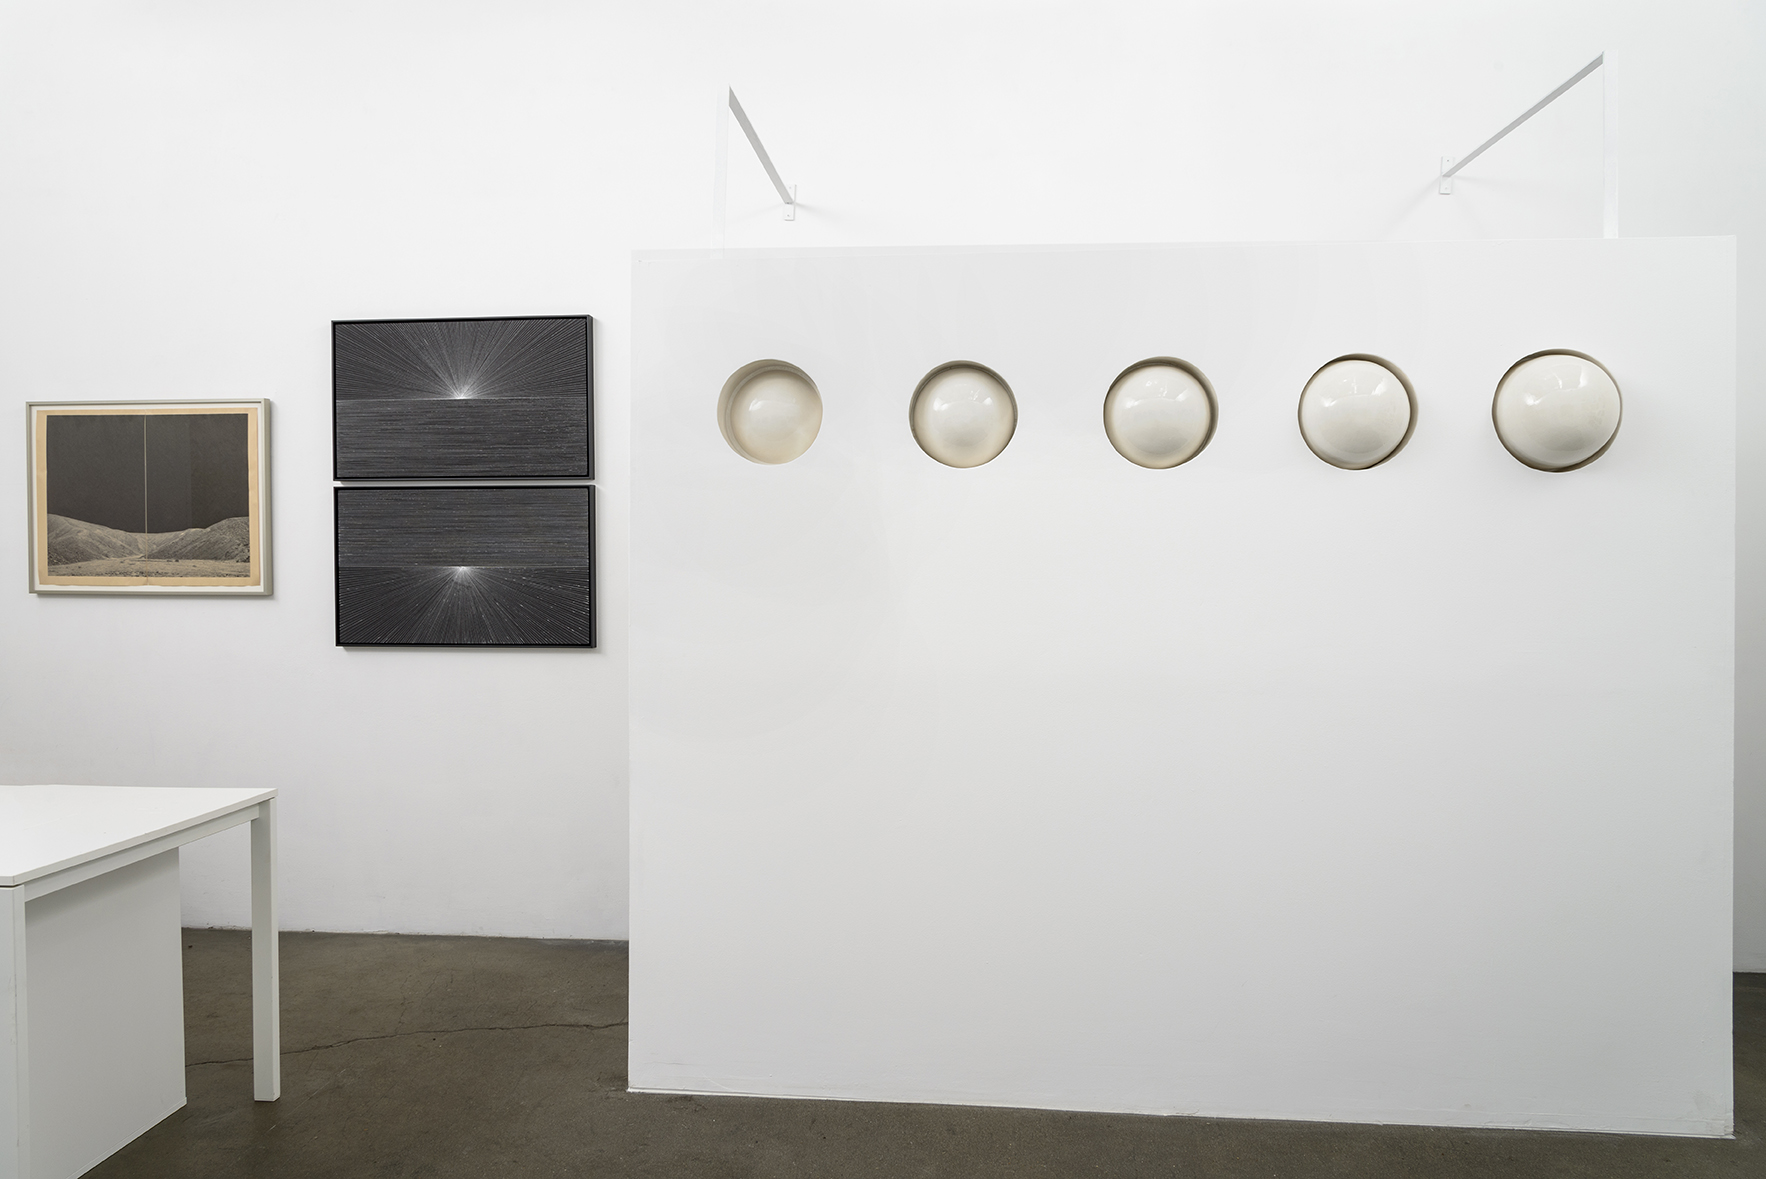 GRAVITY,  installation view, Sloan Projects, 2015/2016